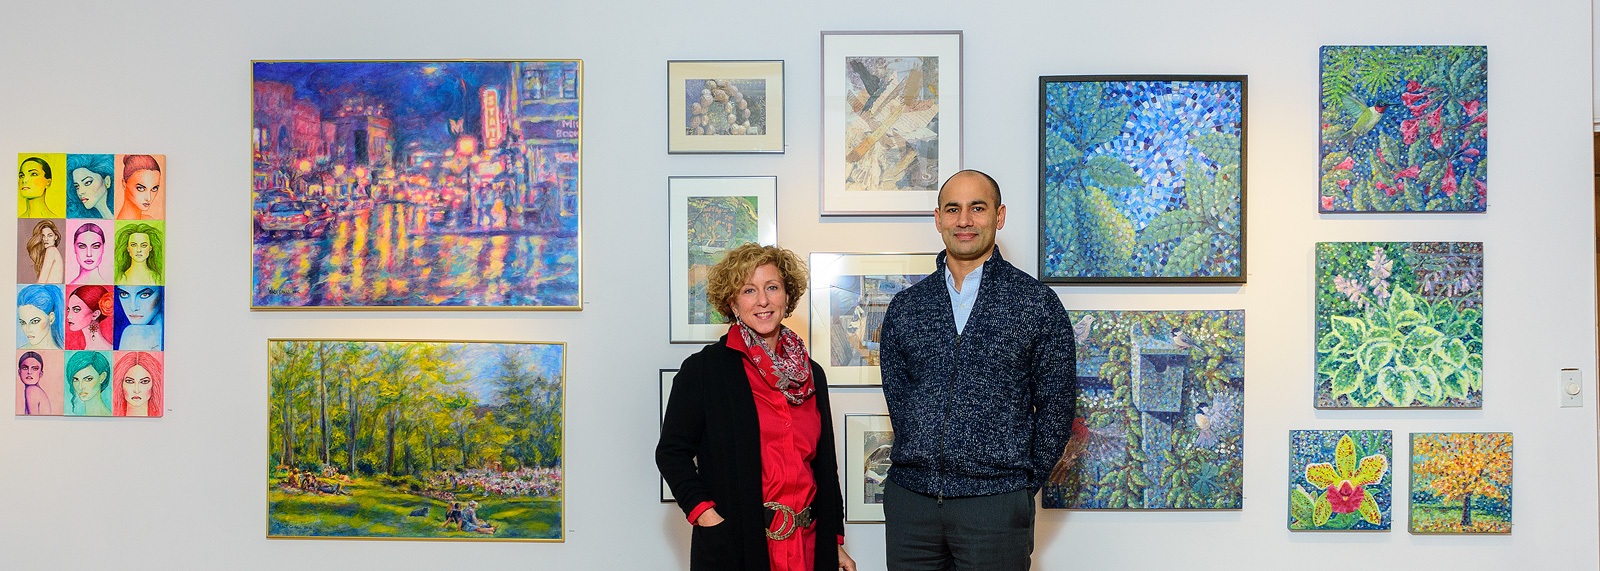 Marie Klopf and Neel Hajra at the Ann Arbor Art Center